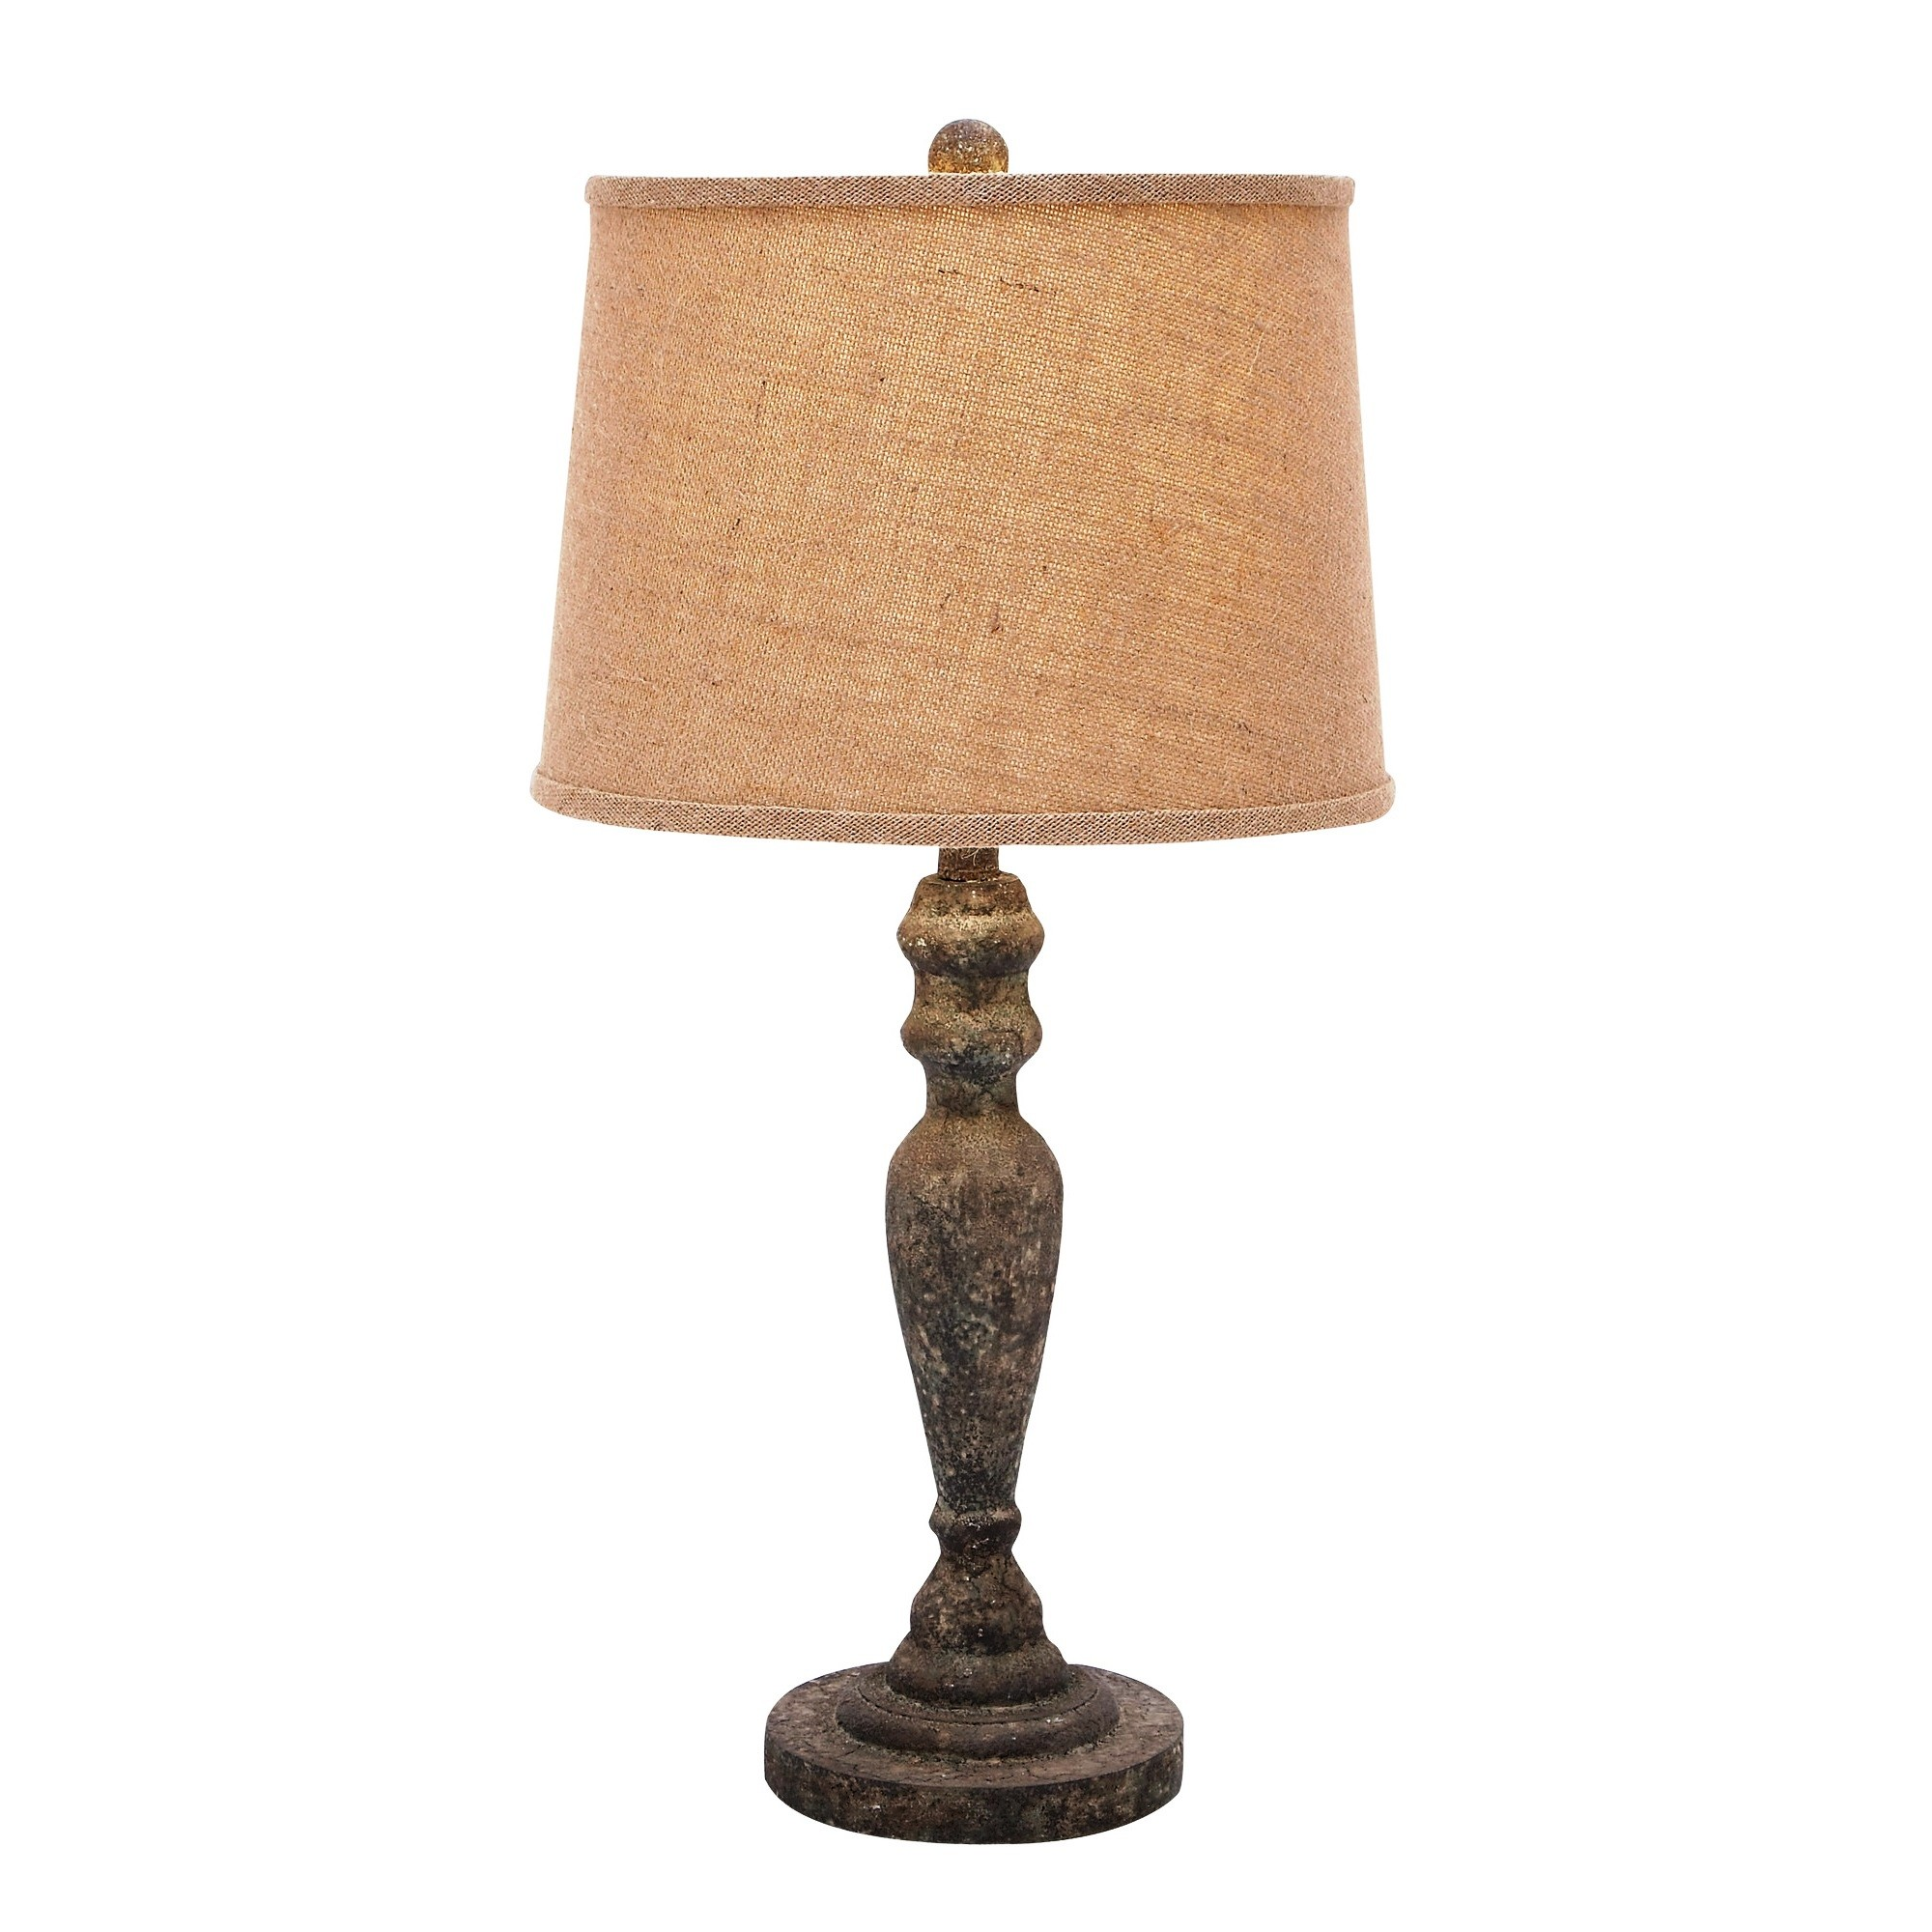 Woodland Imports Clic Solid Wooden Table Lamp 85981